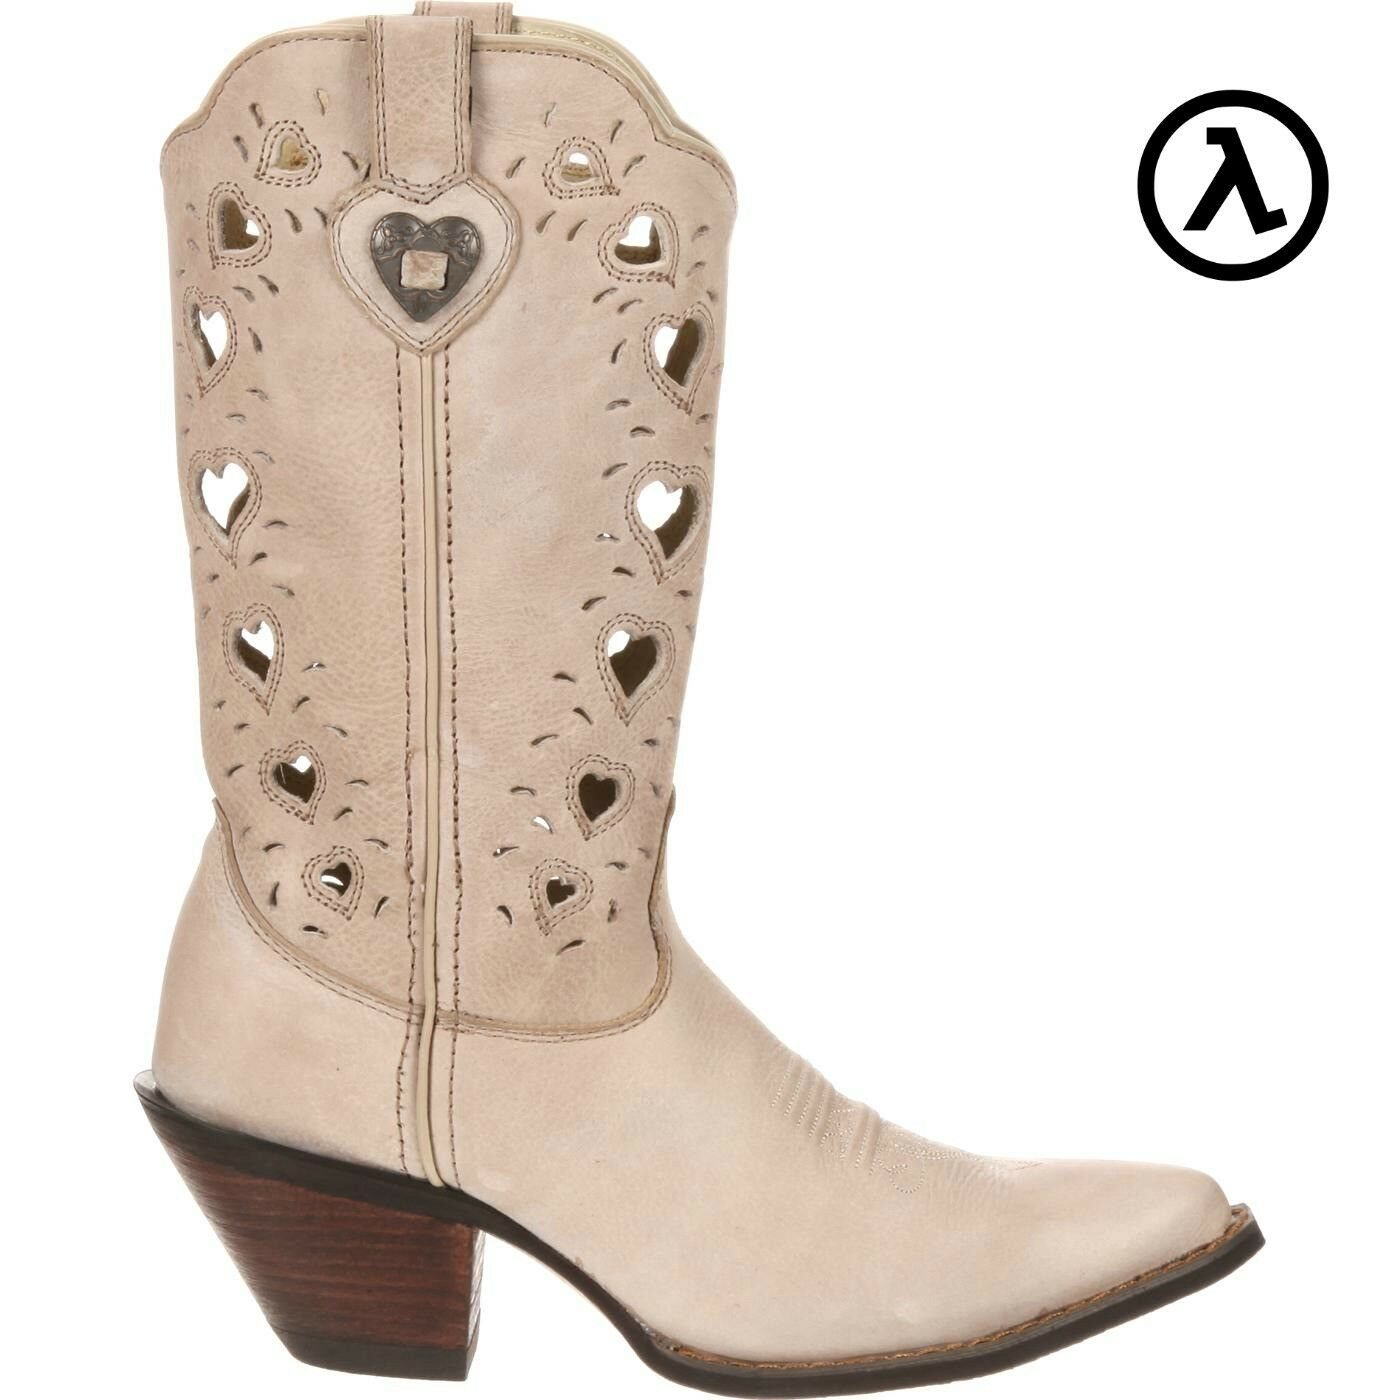 CRUSH BY DURANGO WOMEN'S TAUPE HEARTFELT Stiefel RD3421 - ALL SIZES - NEW